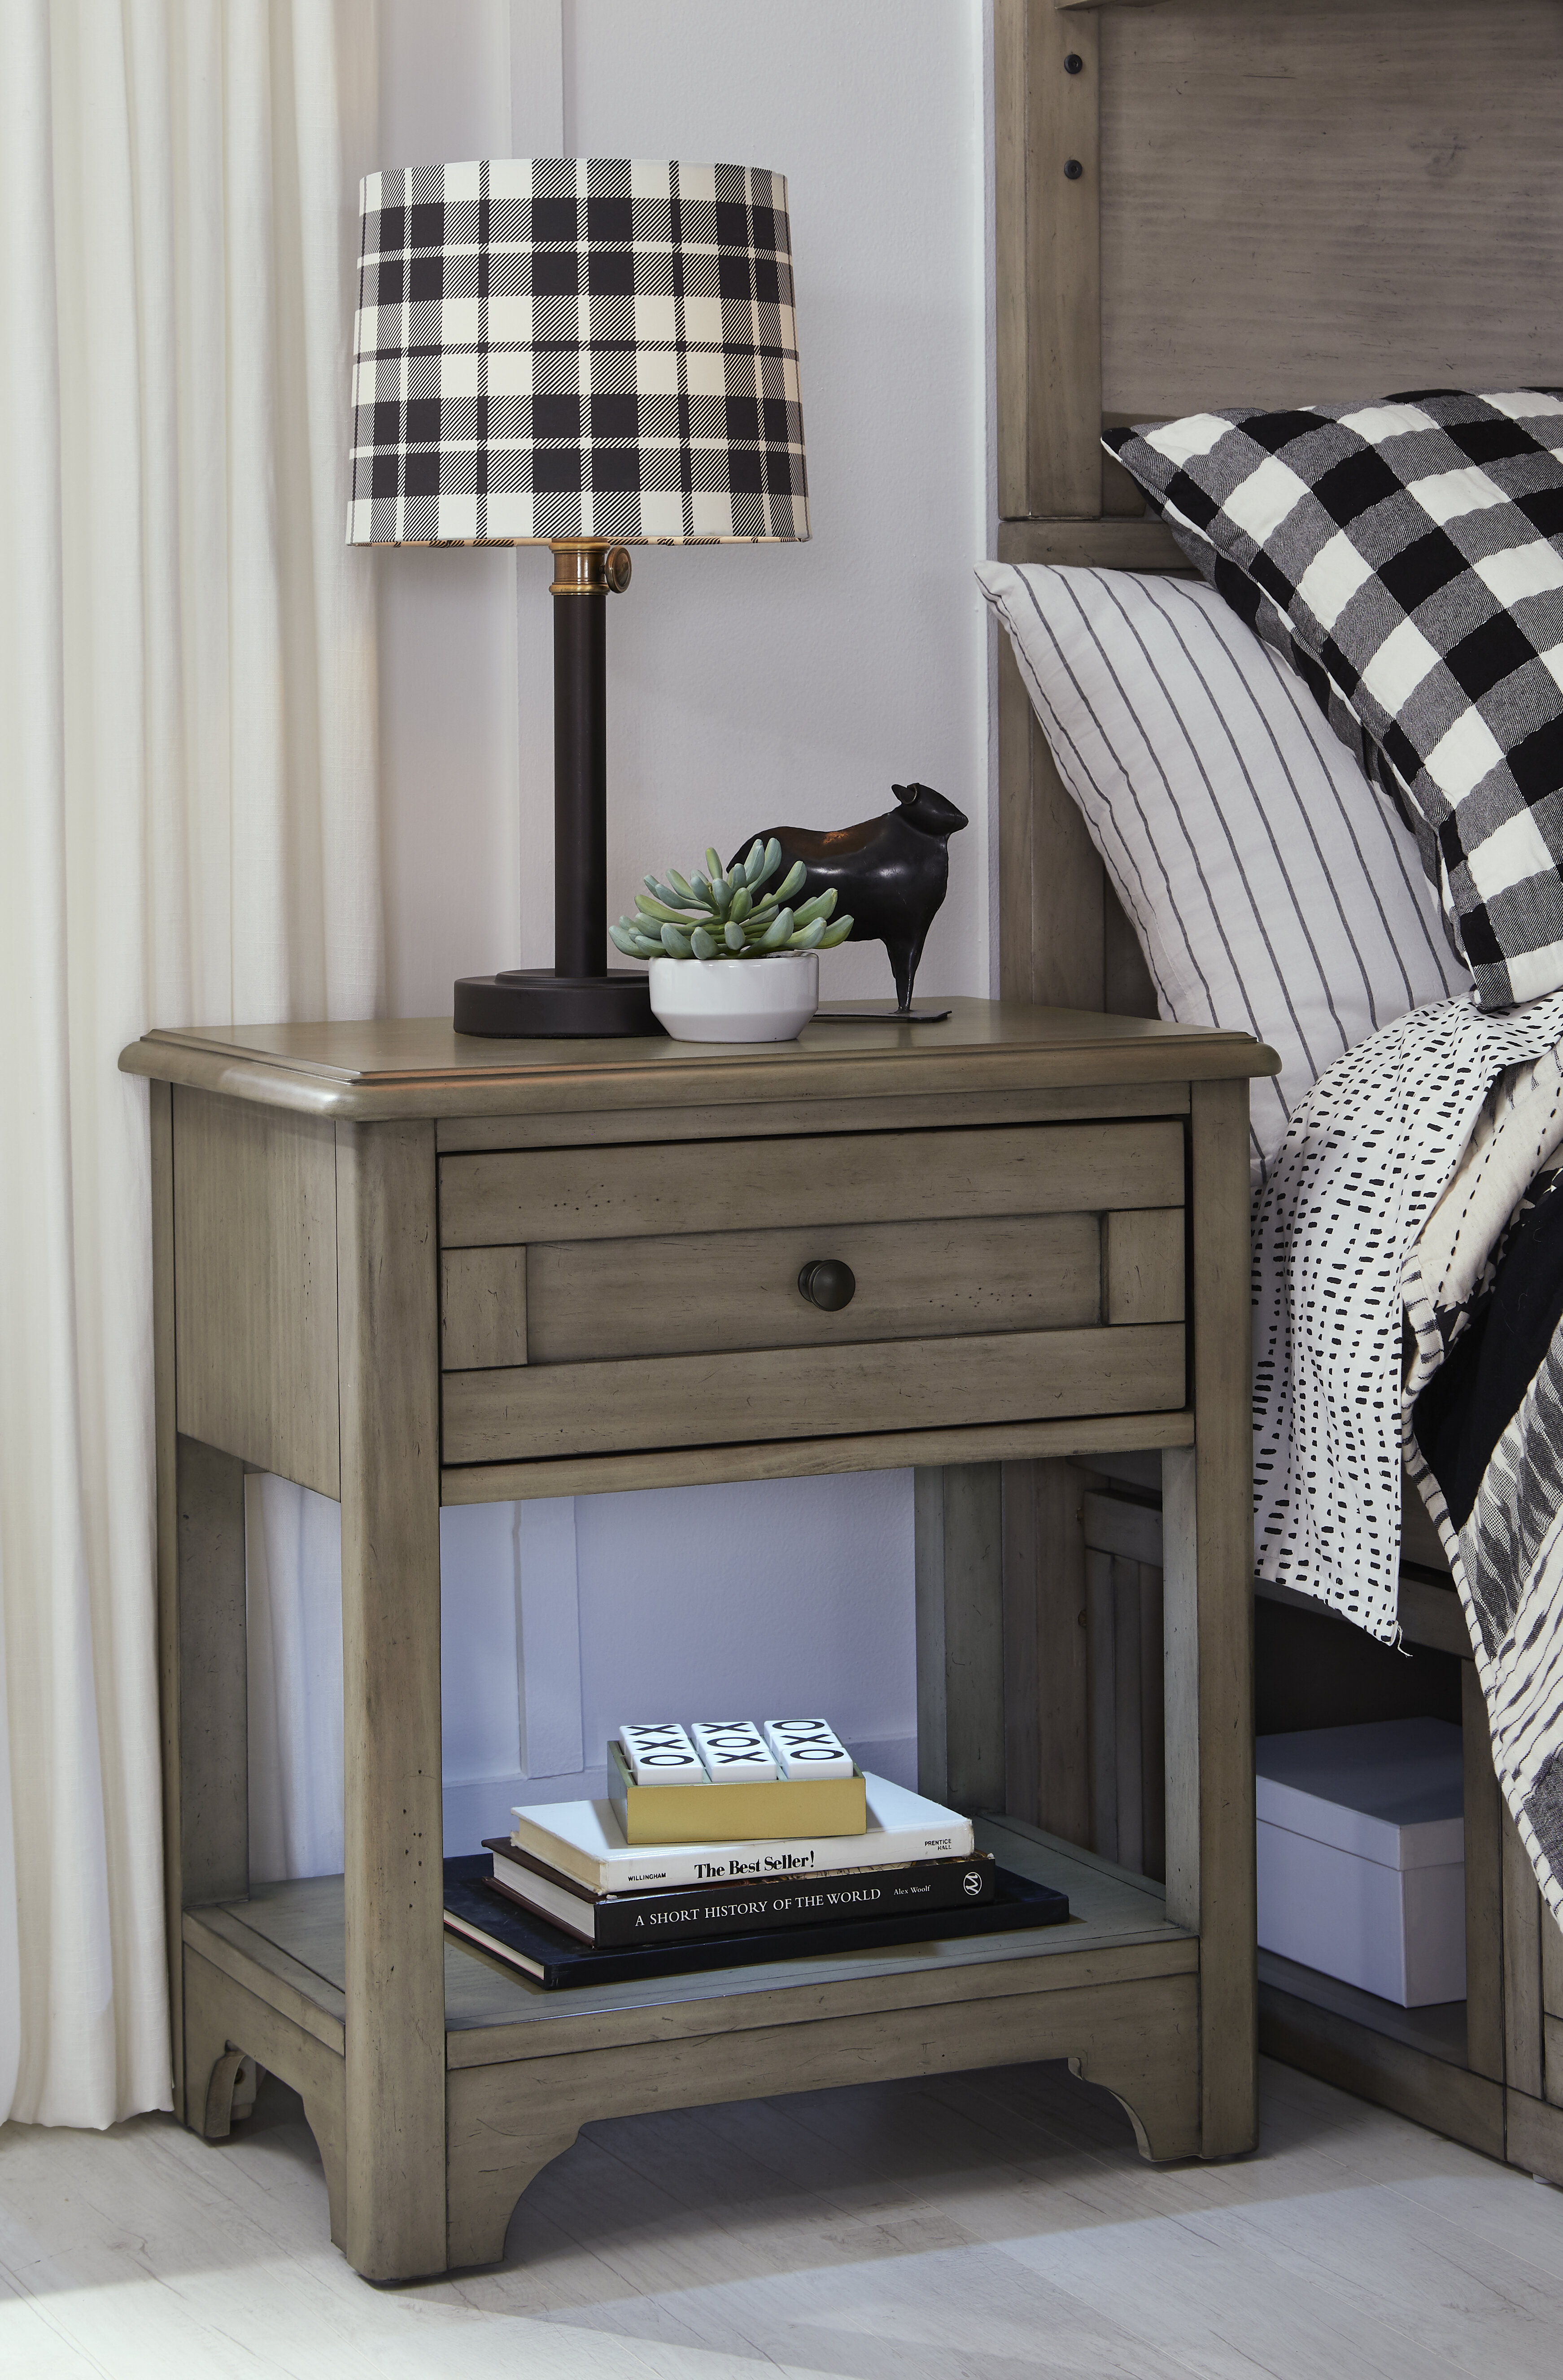 Ophelia Co Lally 1 Drawer Solid Wood Nightstand In Old Crate Brown Wayfair